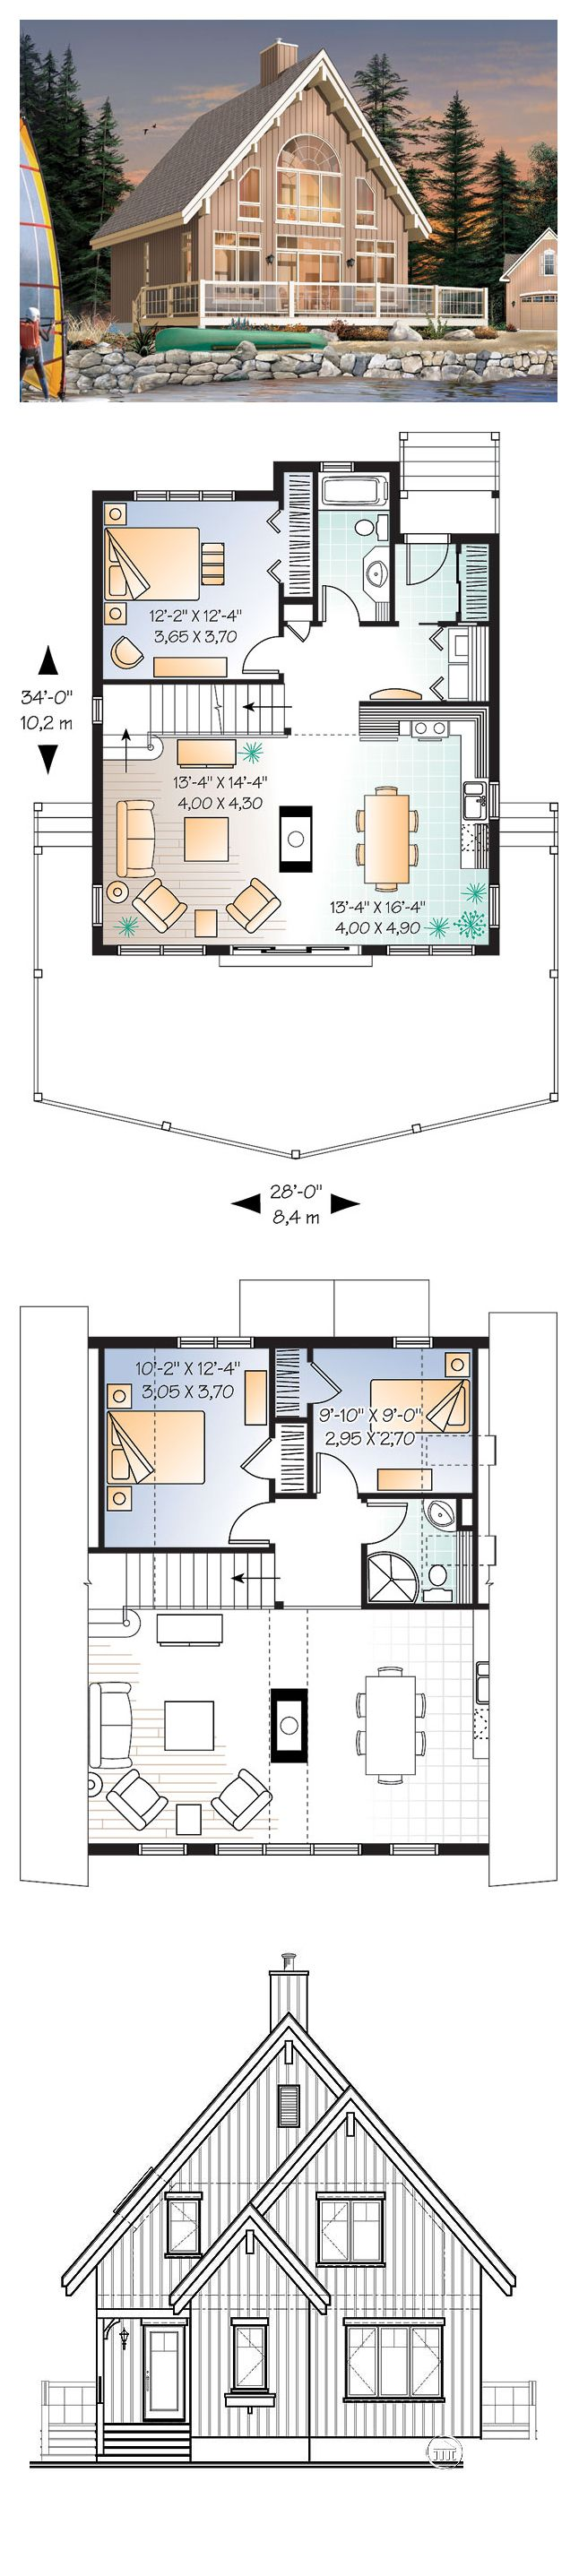 16 best lakefront home plans images on pinterest country for Lakefront home floor plans